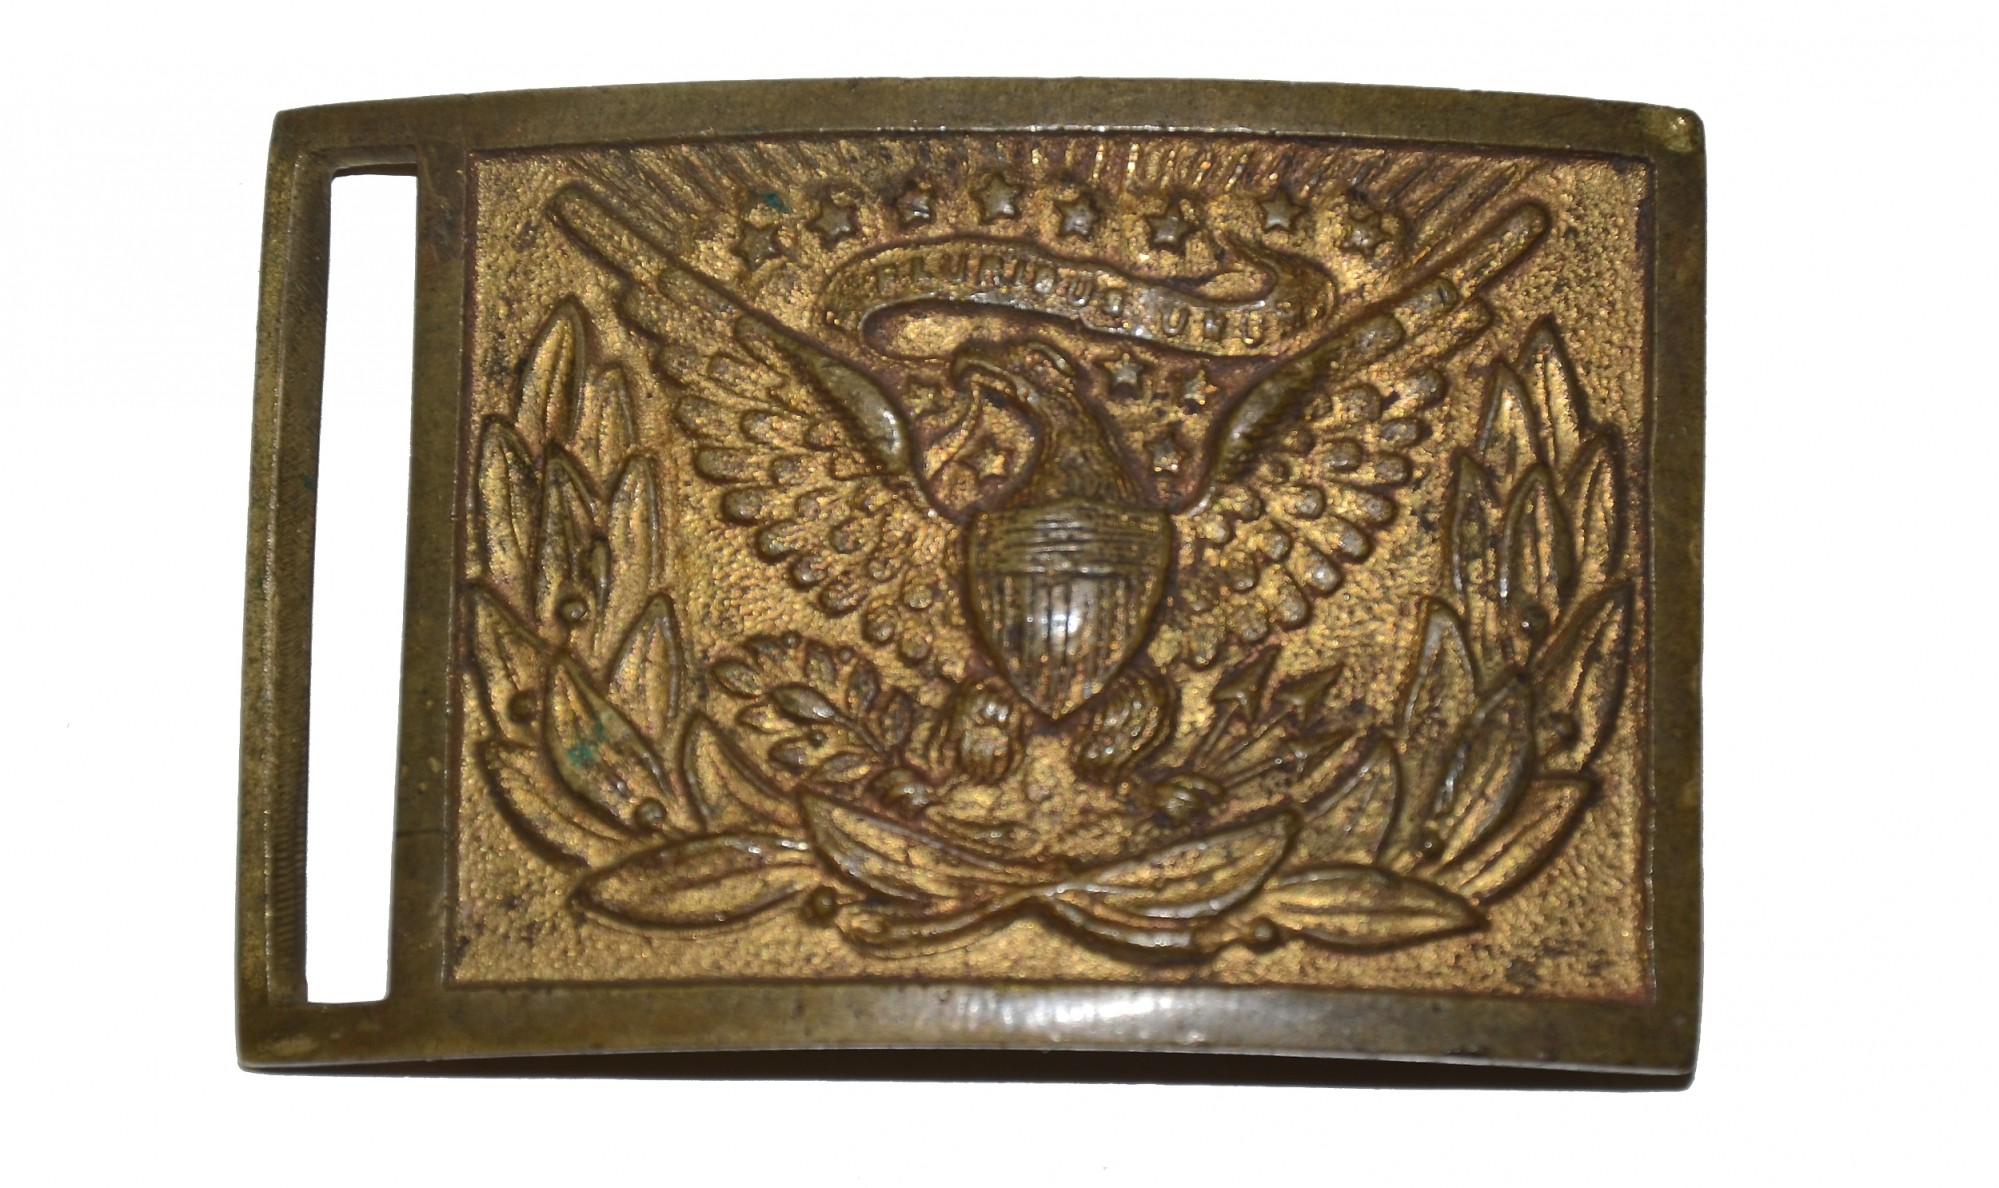 US MODEL 1851 OFFICER'S BELT PLATE